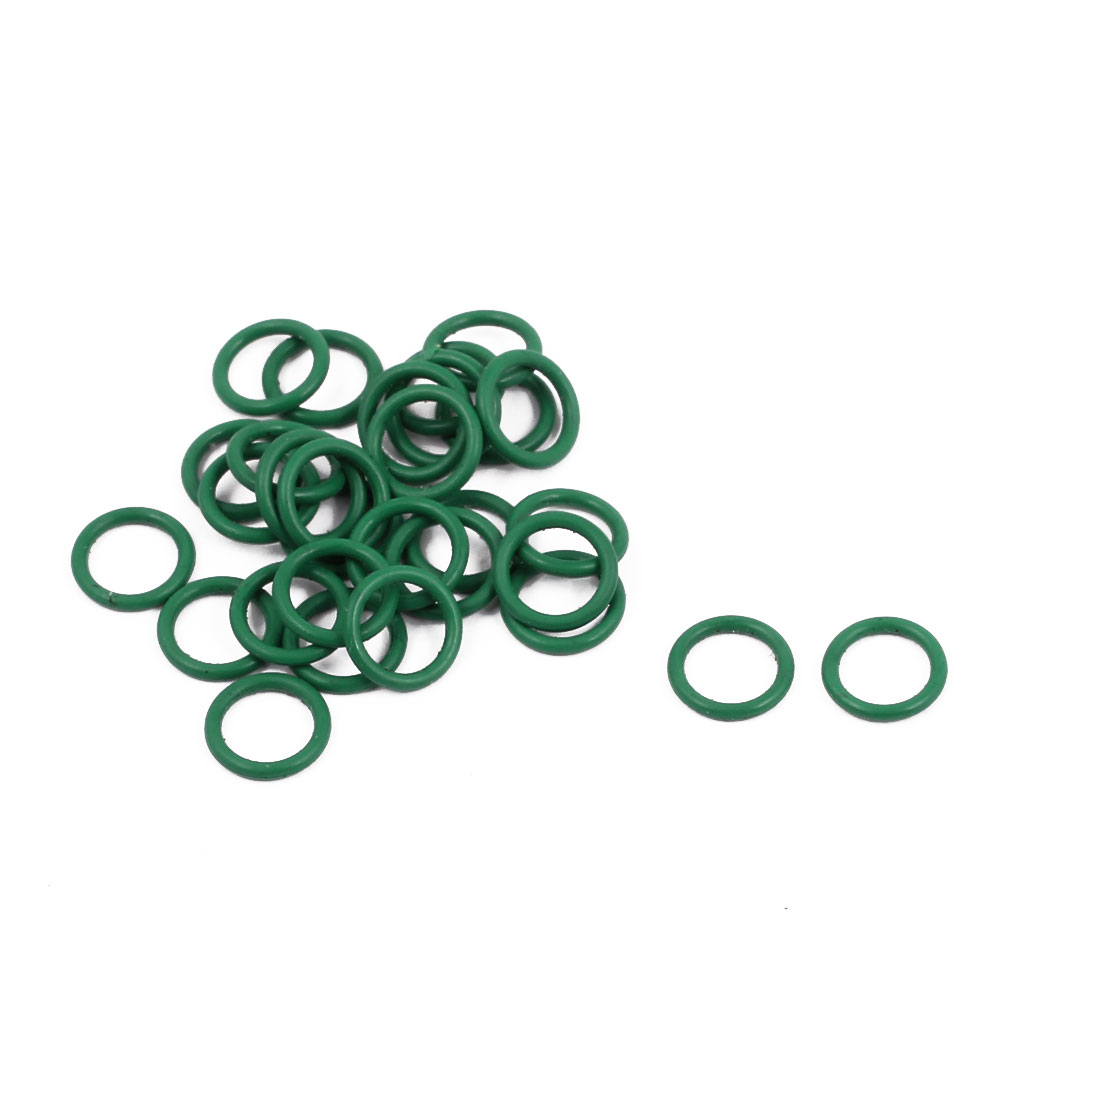 30Pcs 7mm x 1mm FKM O-rings Heat Resistant Sealing Ring Grommets Green